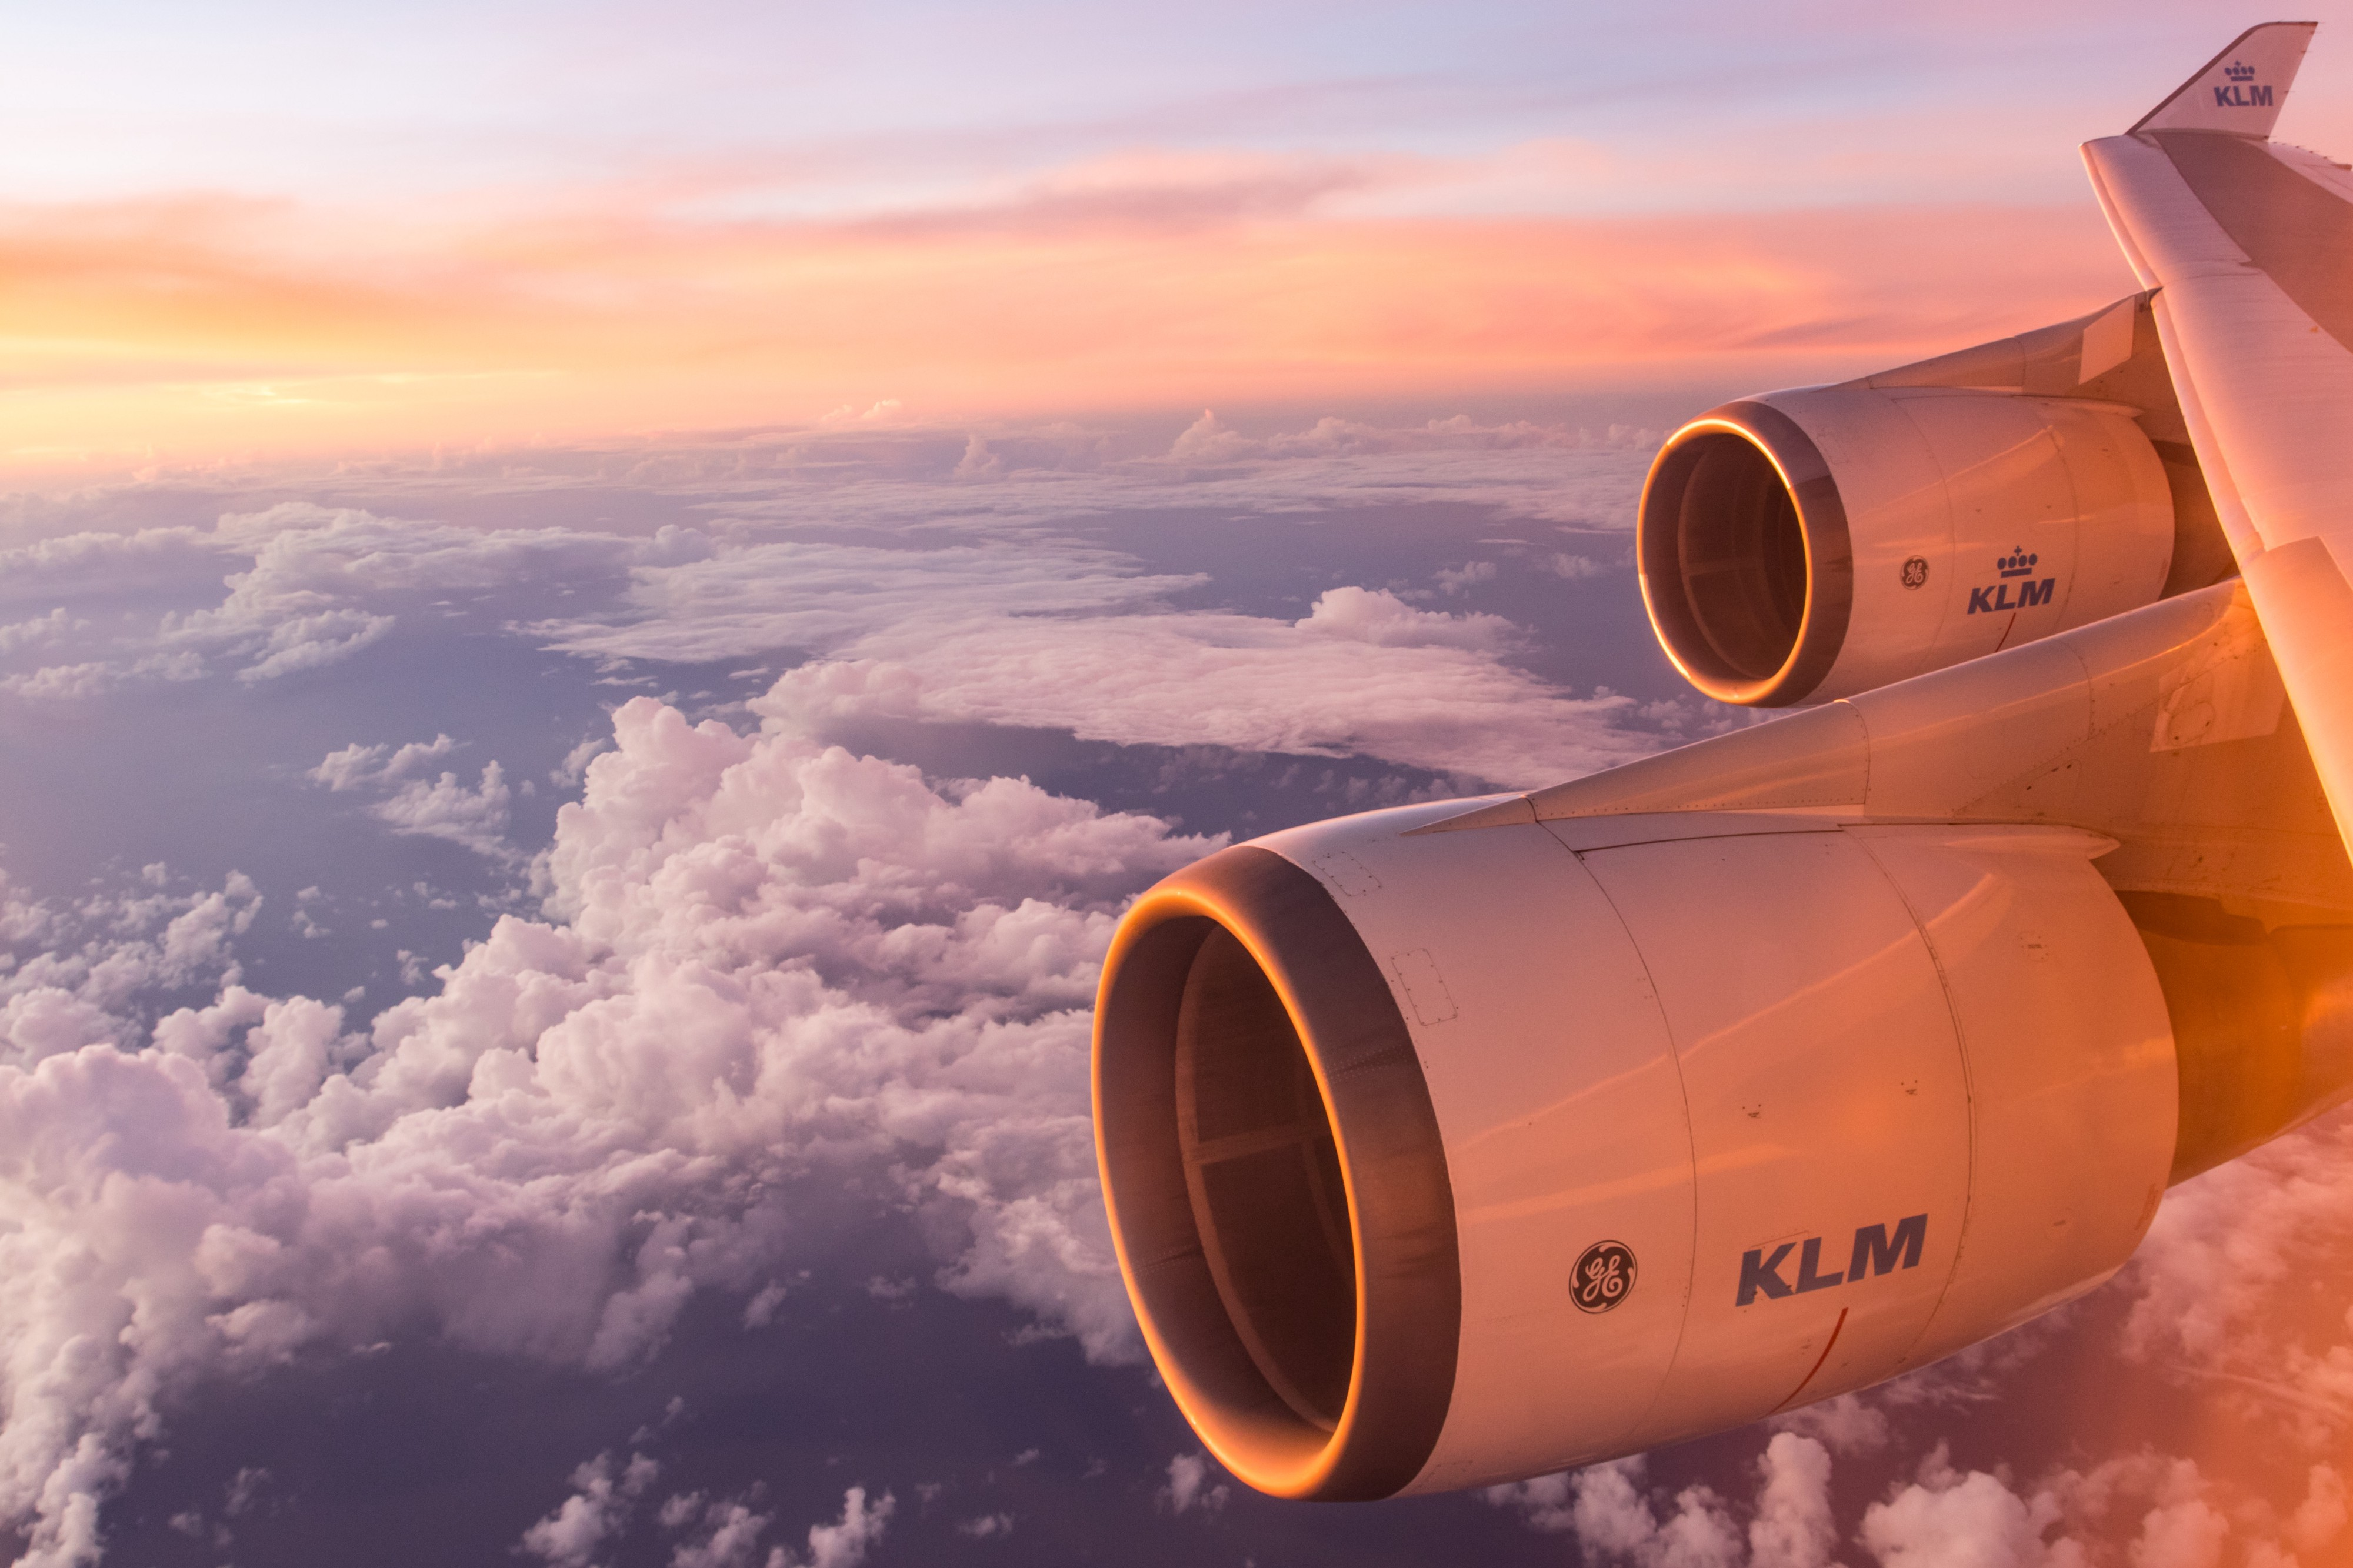 Photo by Emiel Molenaar of clouds and engines outside an airplane window.